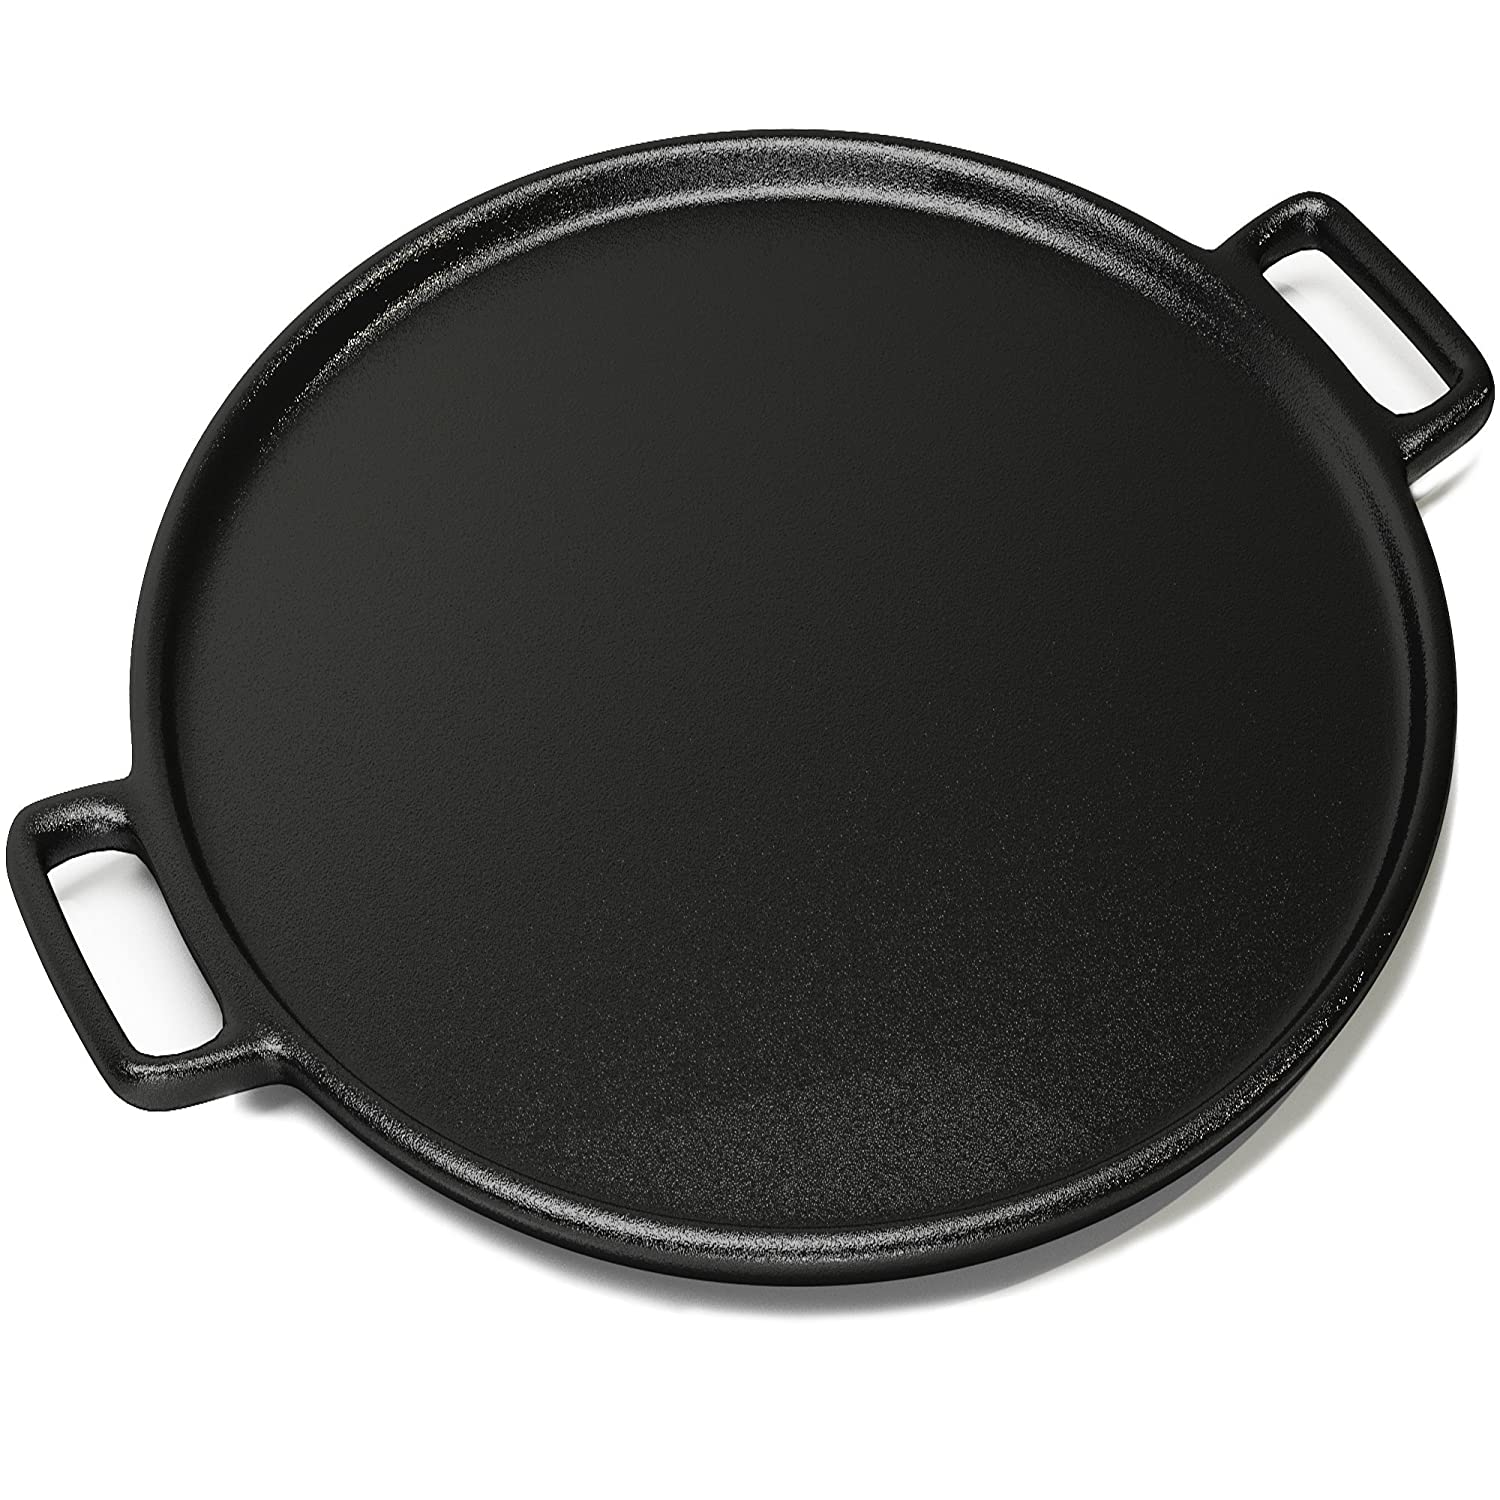 Home-Complete Cast Iron Pizza Pan - 14 Inch - Evenly Bakes and Heats Your Pizza - Works with All Kinds of ovens - Strong Handles and a Small Lip to Avoid Spills and Mess